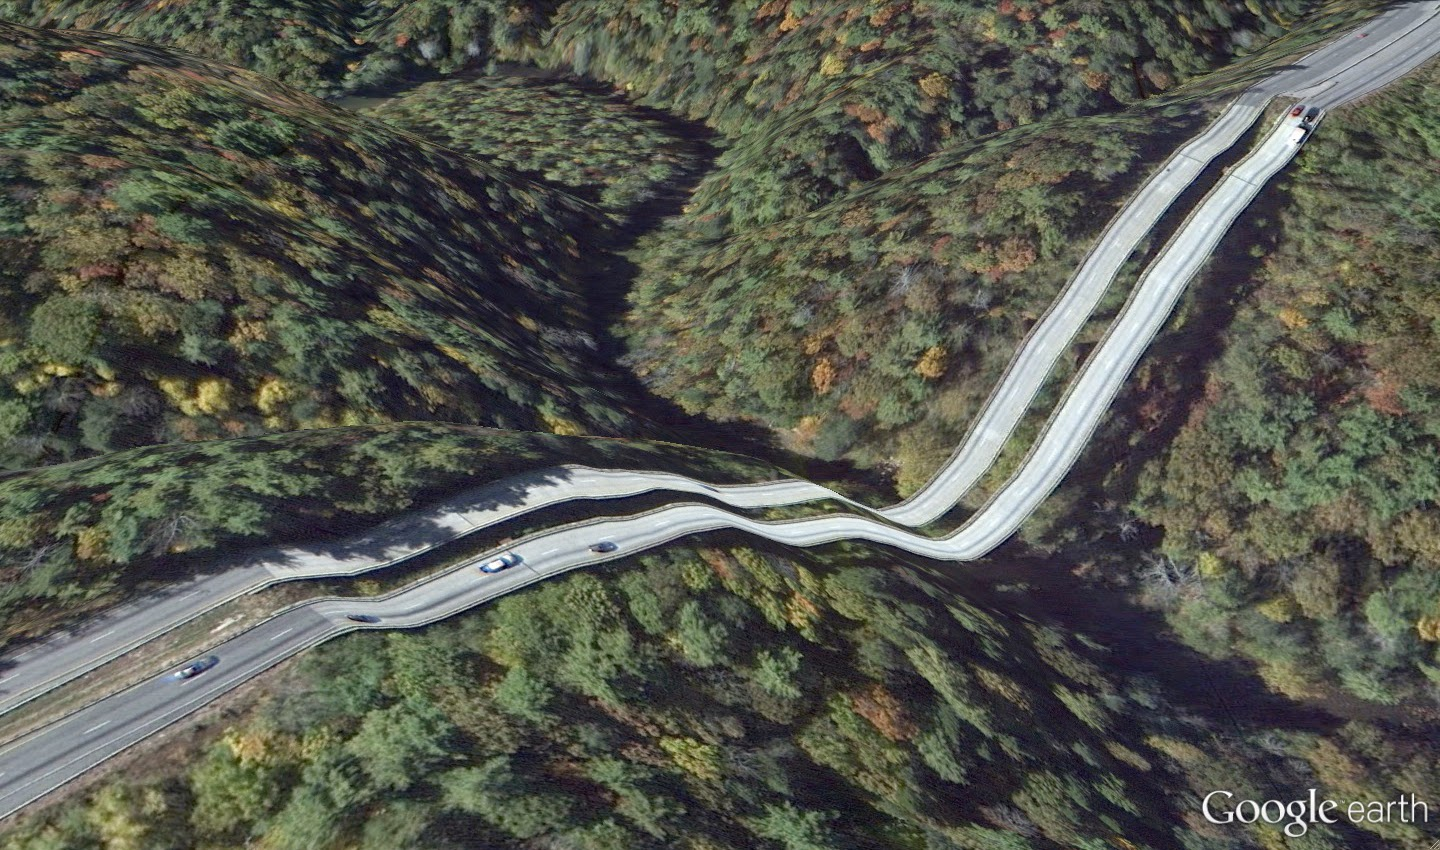 12-Peter-Guice-Clement-Valla-Postcards-From-Google-Earth-www-designstack-co